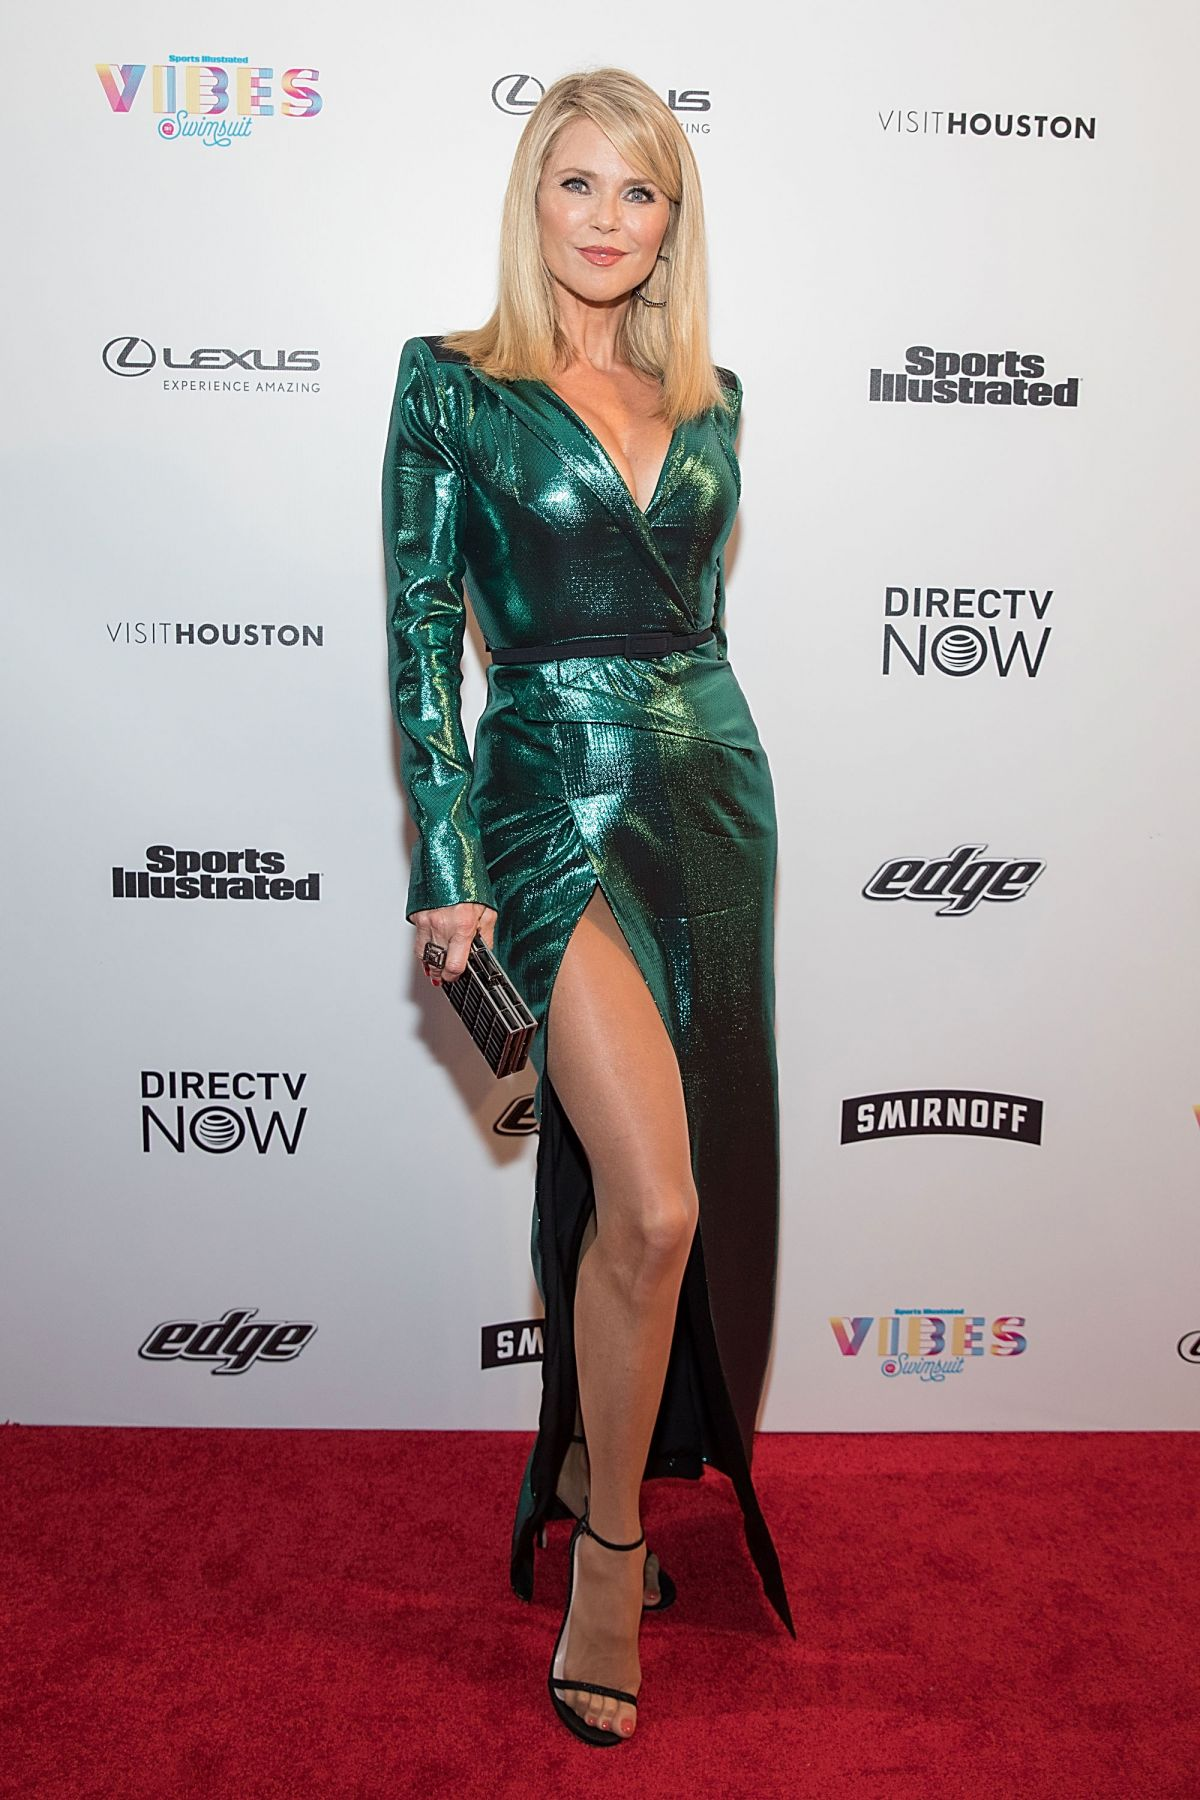 Christie brinkley vibes by si swimsuit launch festival in houston